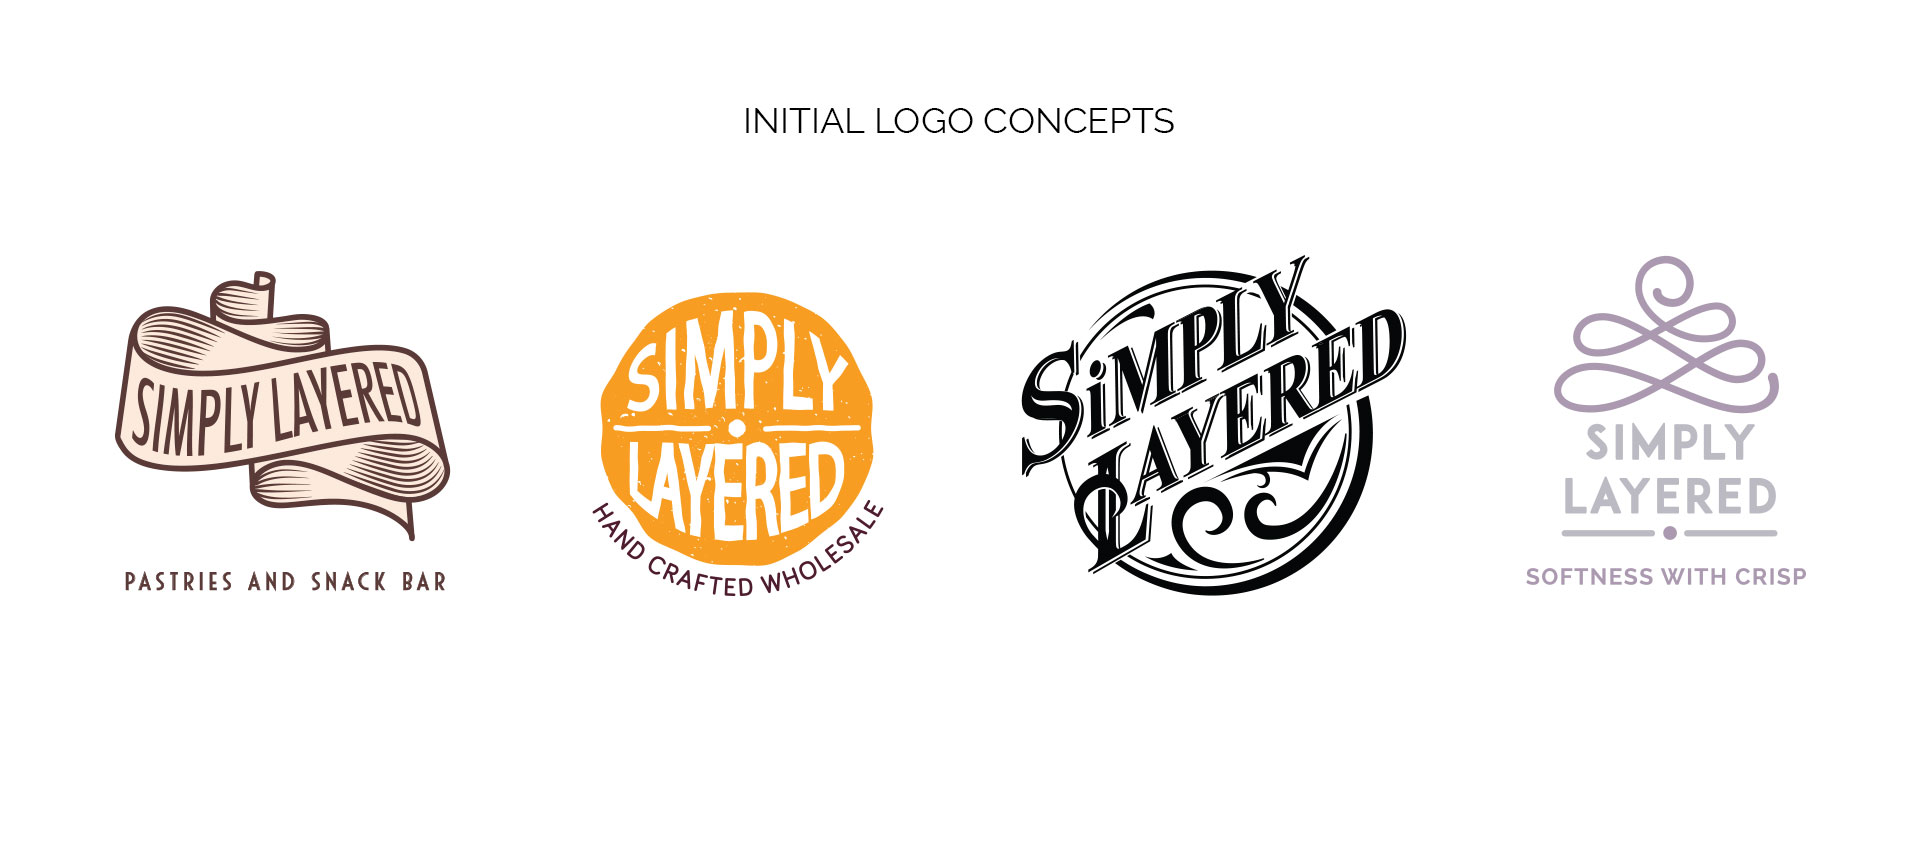 Simply-Layered-logo-concepts-slide-1